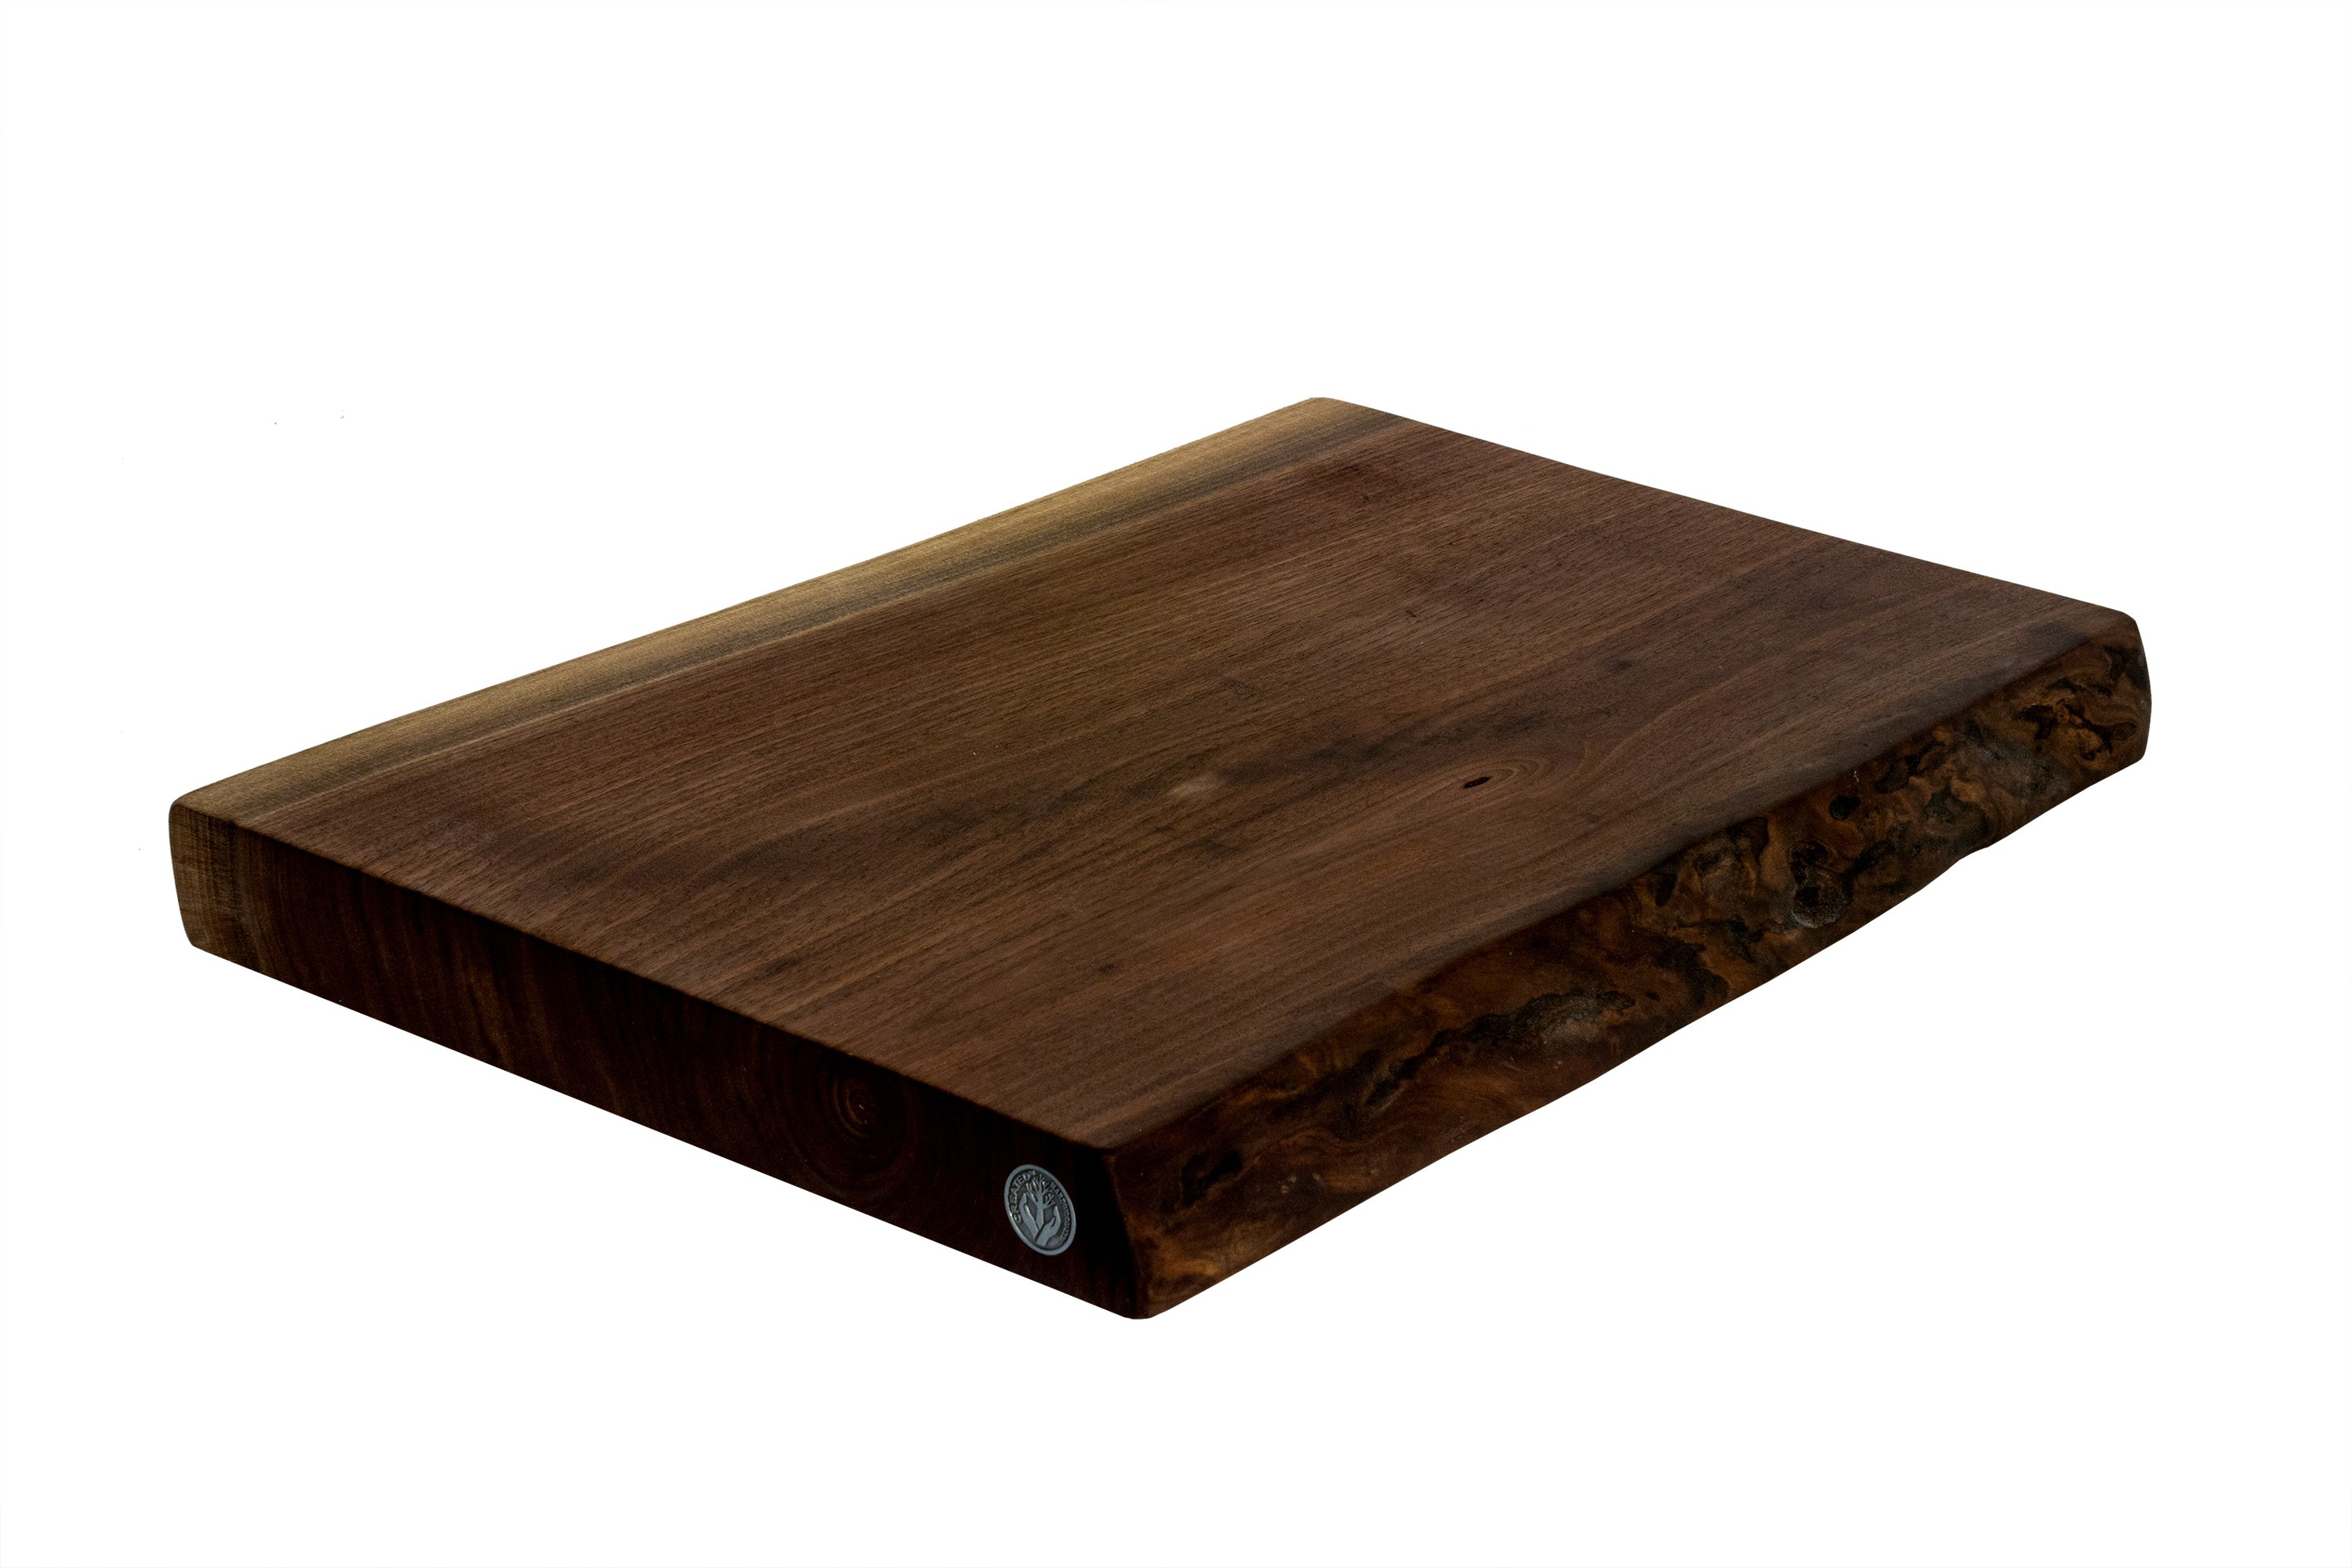 Live Edge Walnut Cutting Board #017 - 20